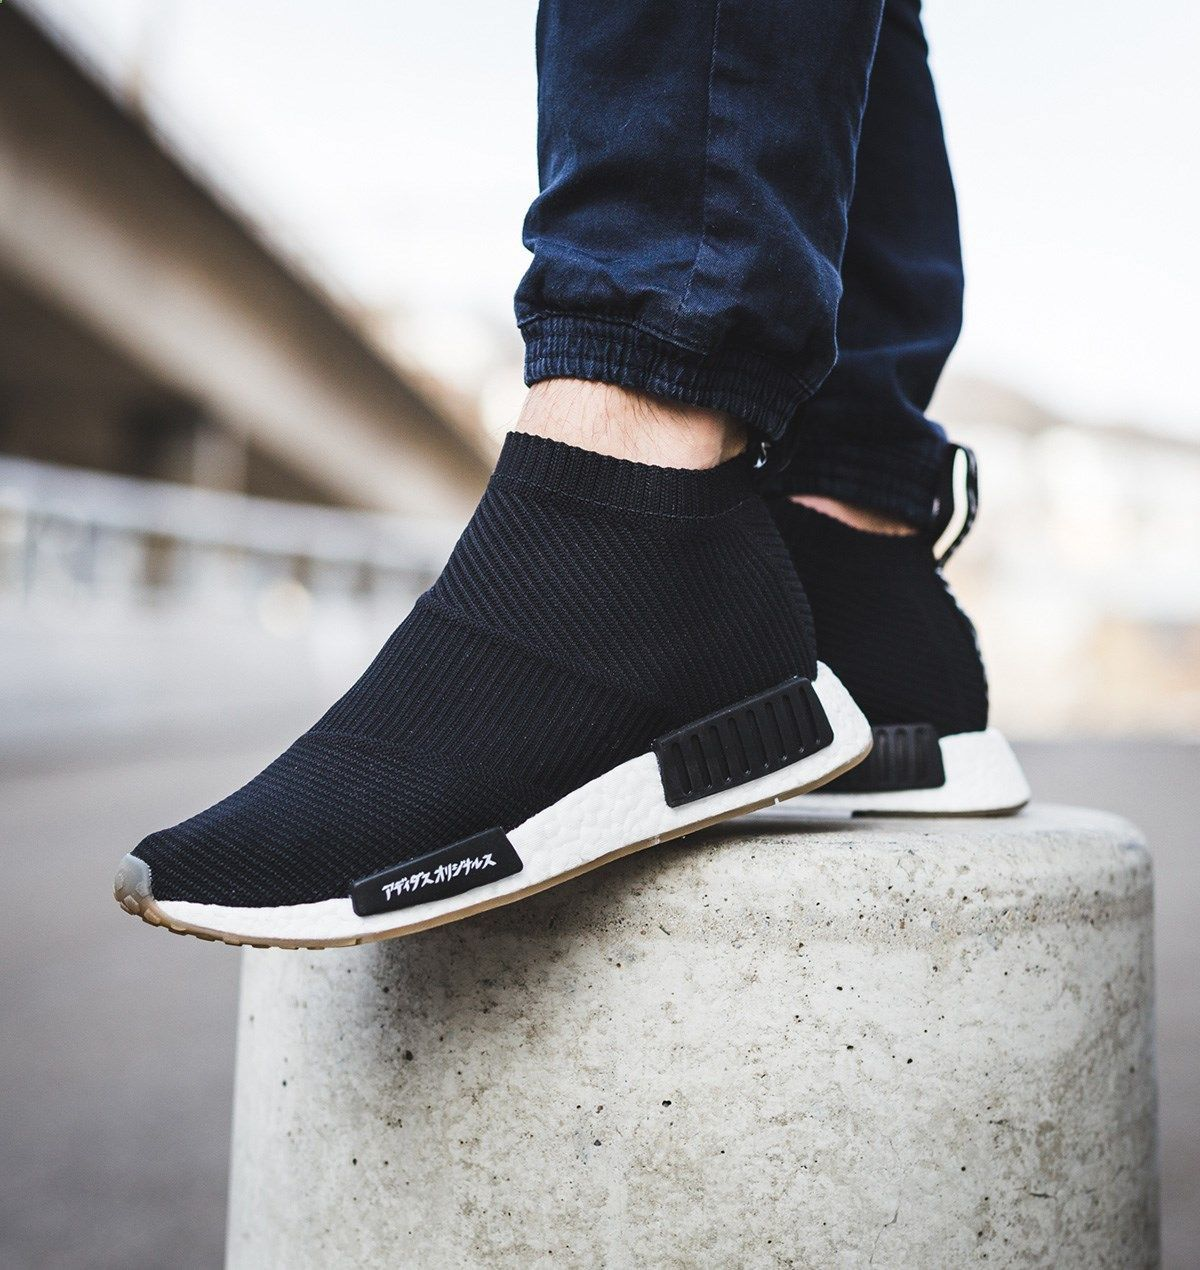 quality design 75f63 46f66 On-Foot  MIKITYPE x United Arrows Sons x adidas NMD CS1 Primeknit - EU Kicks   Sneaker Magazine